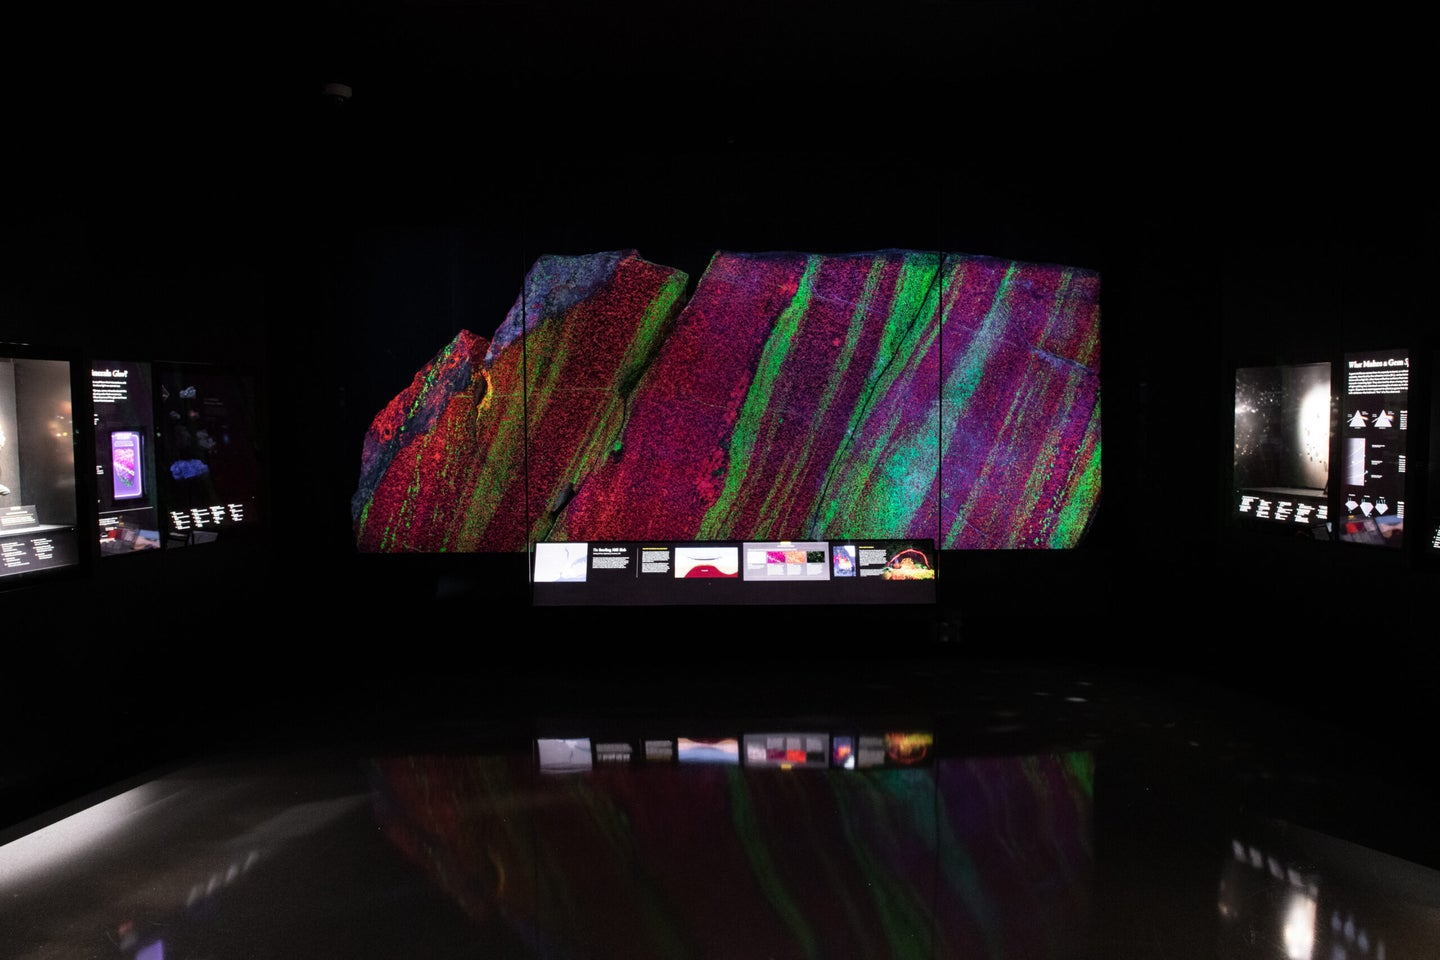 A large piece of granite rock glows in bright green and crimson red stripes behind glass and against the dark background of a museum exhibit. A few illegible, backlit display signs surround the large rock.